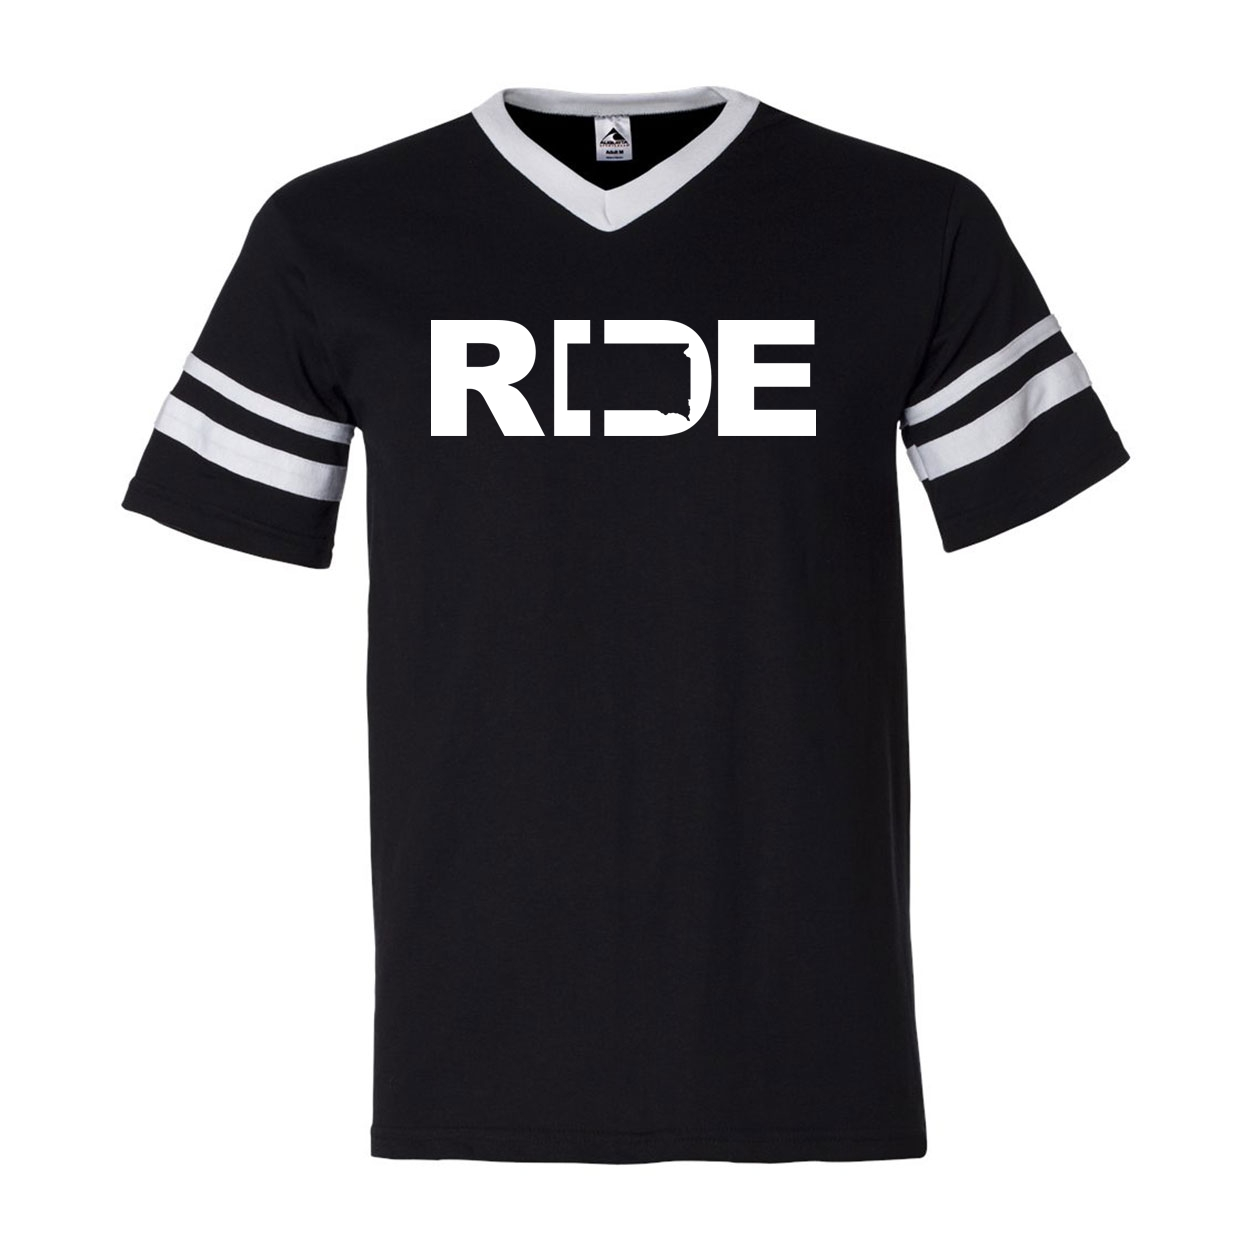 Ride South Dakota Classic Premium Striped Jersey T-Shirt Black/White (White Logo)